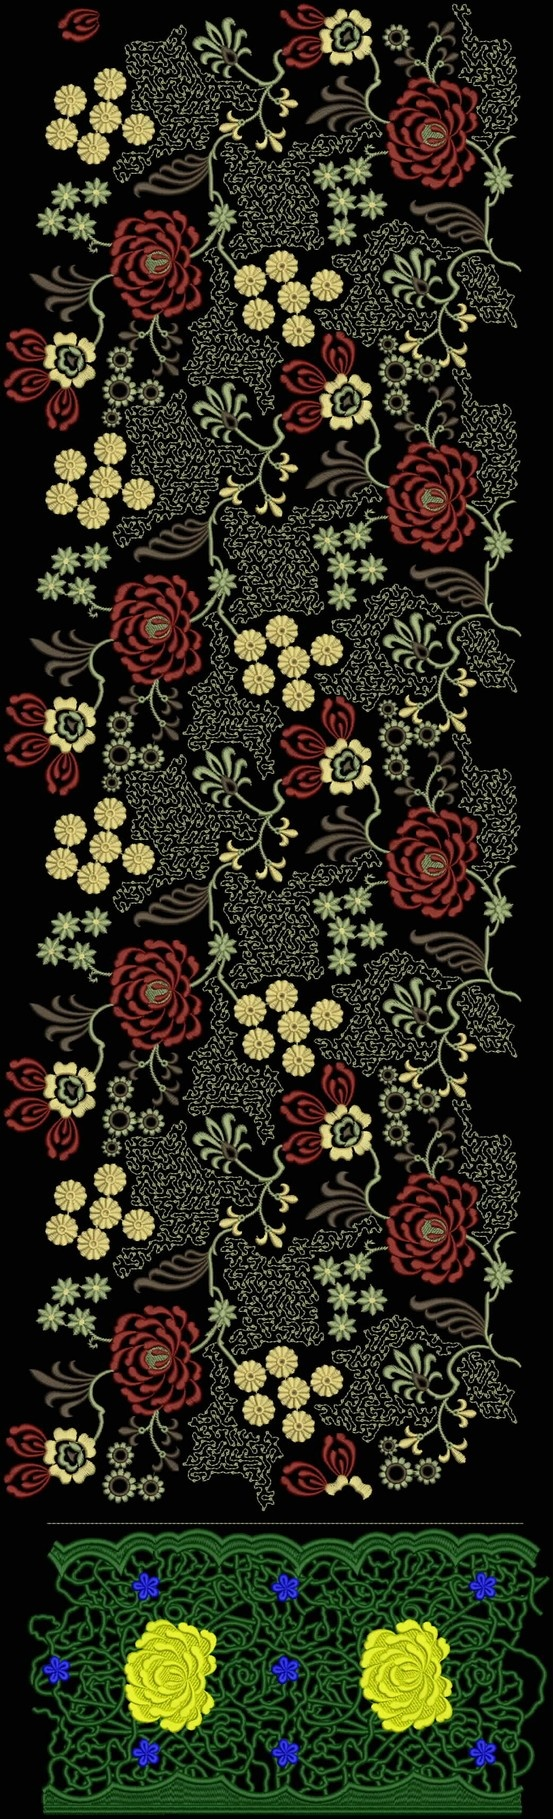 Latest Embroidery Designs For Sale, If U Want Embroidery Designs Plz Contact (Khalid Mahmood, +92-300-9406667) www.embroiderydesignss.blogspot.com Design# Angar50